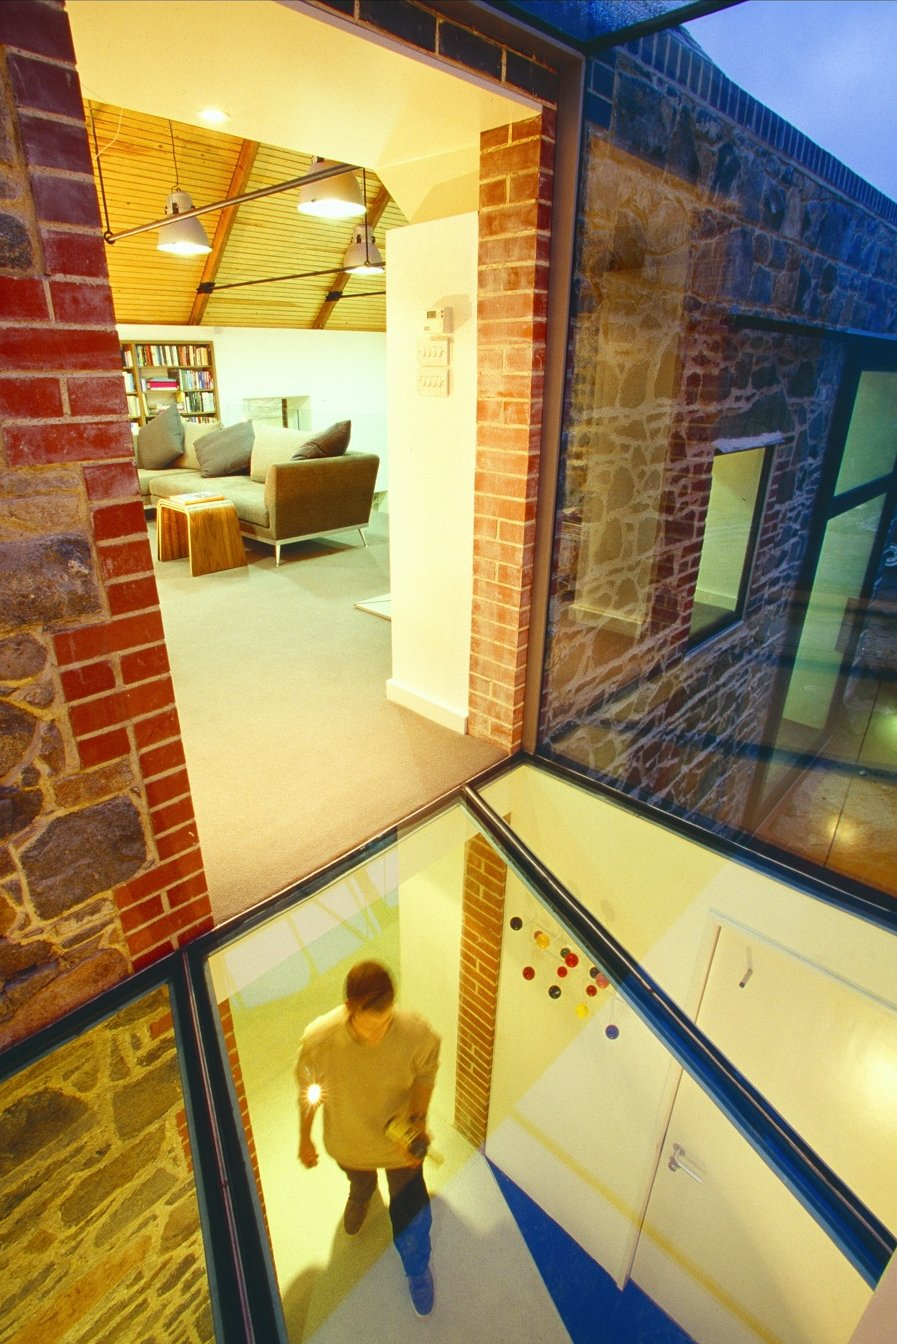 Glass Floor & Wall, Living Space, Barn Conversion on the Island of Guernsey